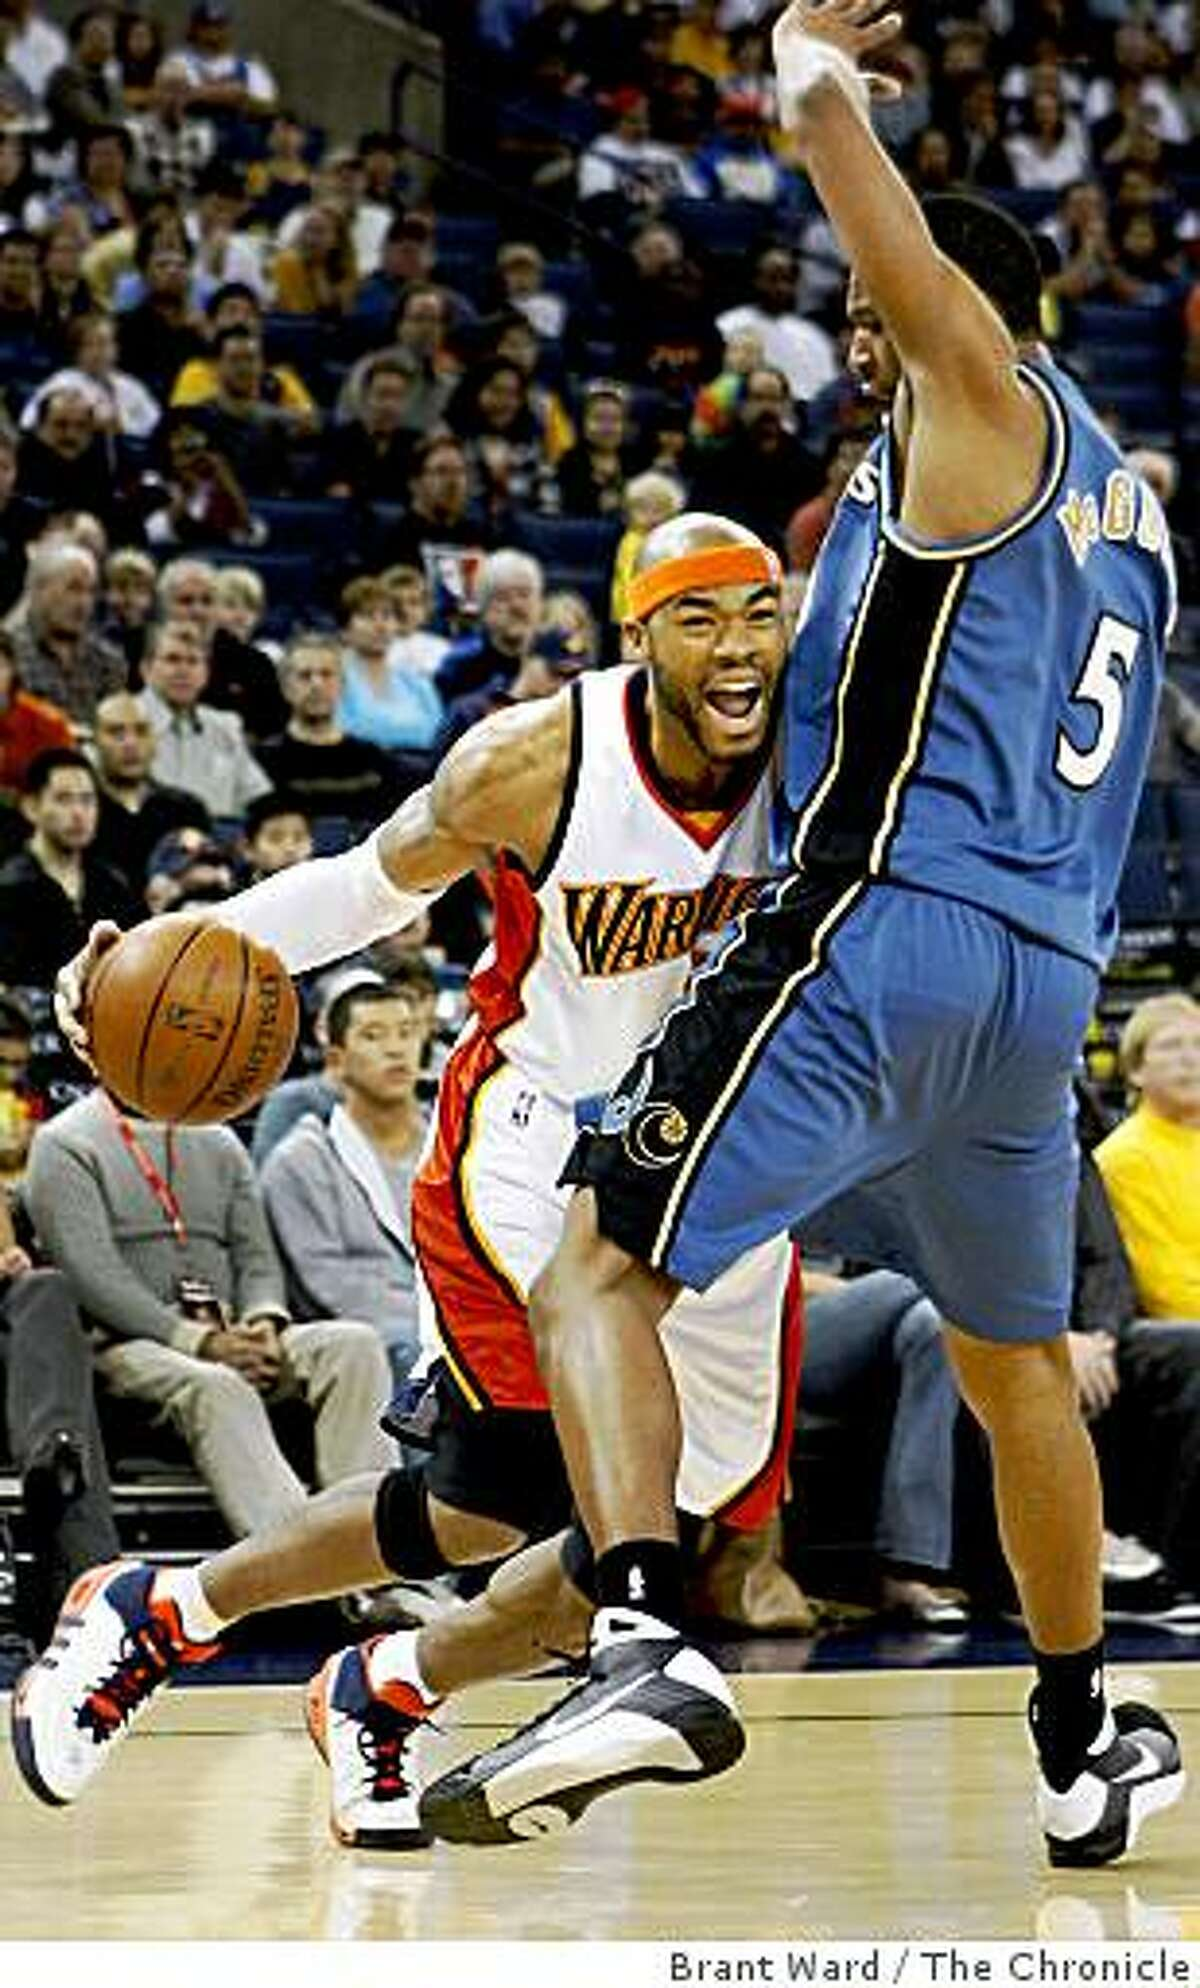 Warriors Corey Maggette makes a move against the Wizards Dominic McGuire in the first half a game vs. the Wizards Monday January 19, 2009.